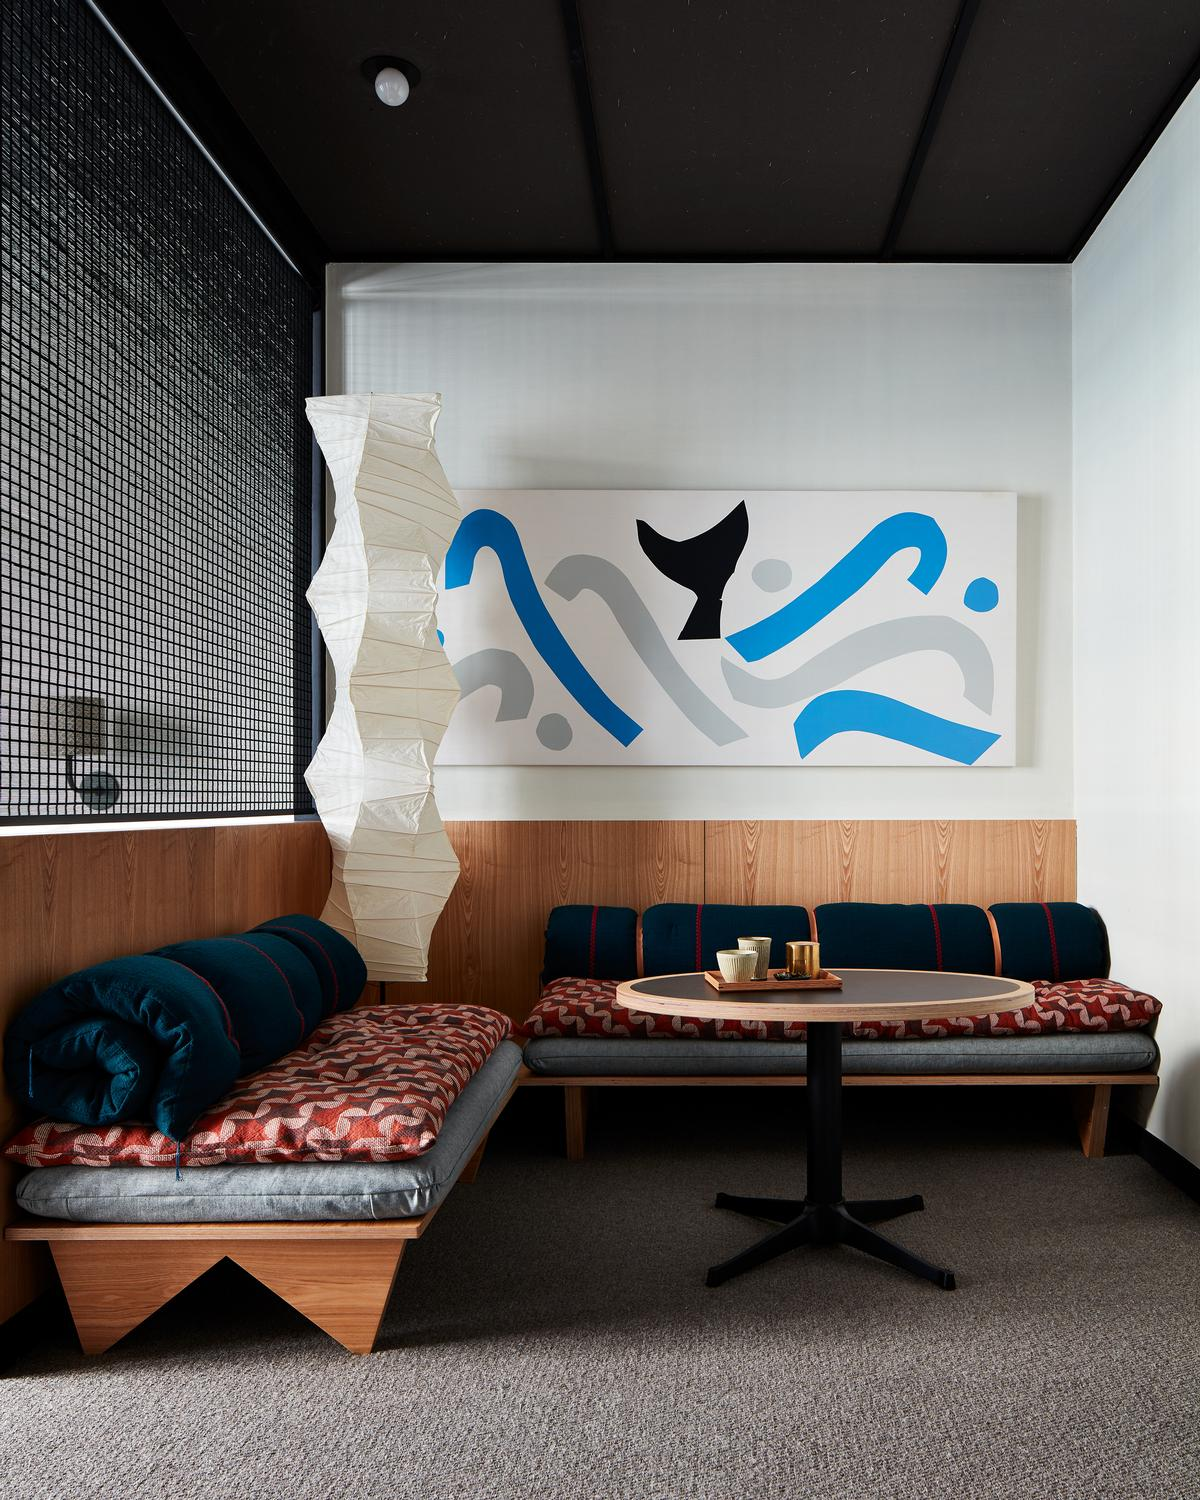 Ace Hotel Kyoto will be a monument to the city's art, nature, culture, craft and history / Stephen Kent Johnson